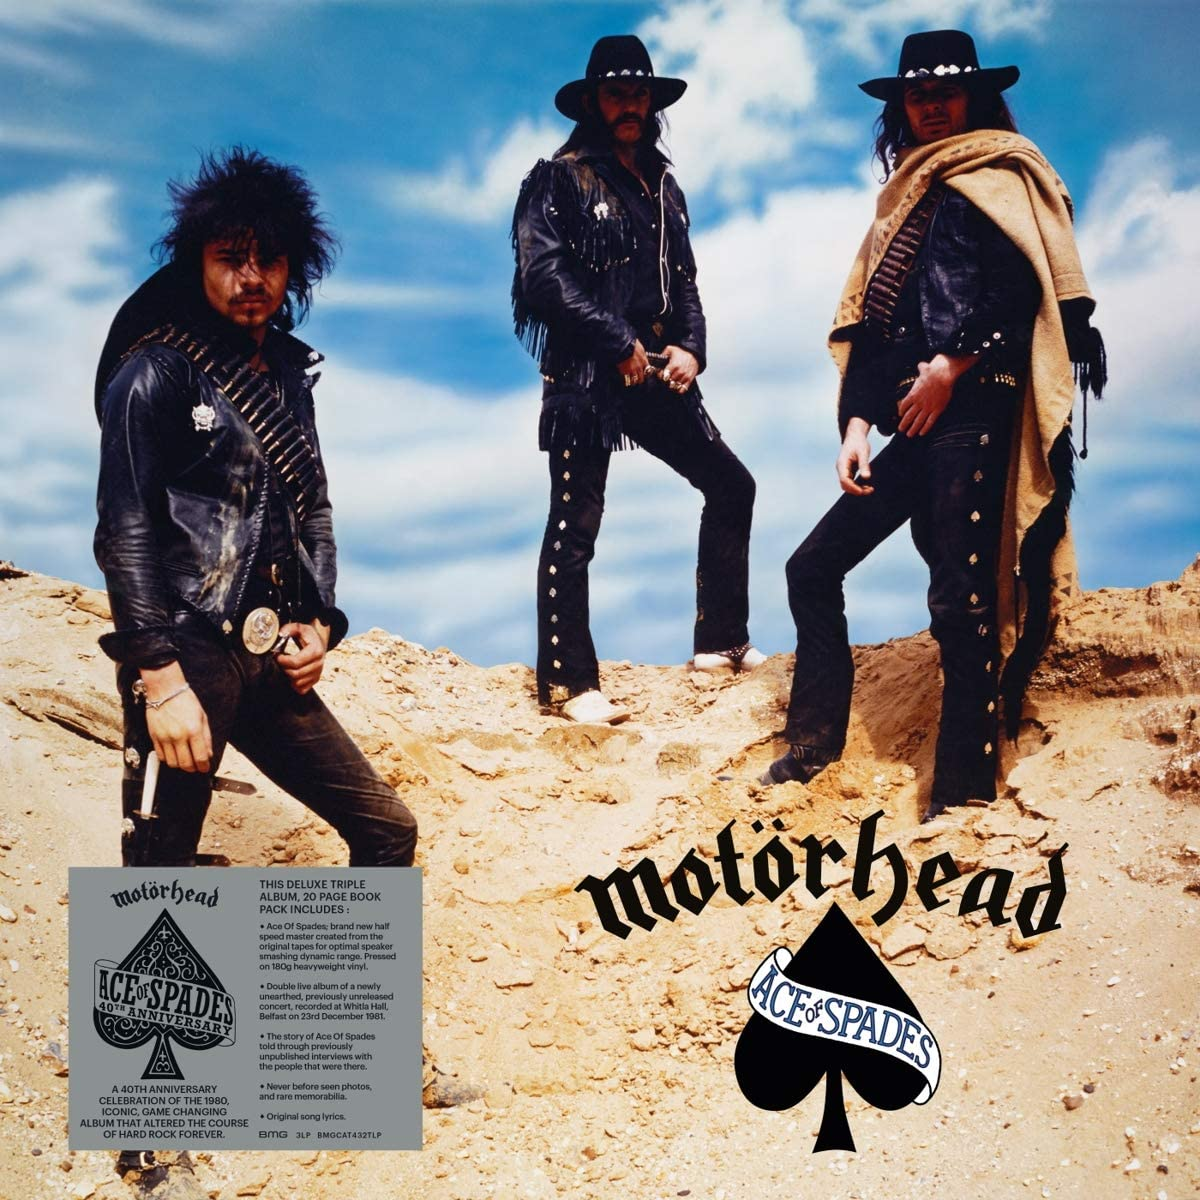 Motörhead - Ace of Spades (40th Anniversary) 3LP 180g Vinyl Record Album + Book